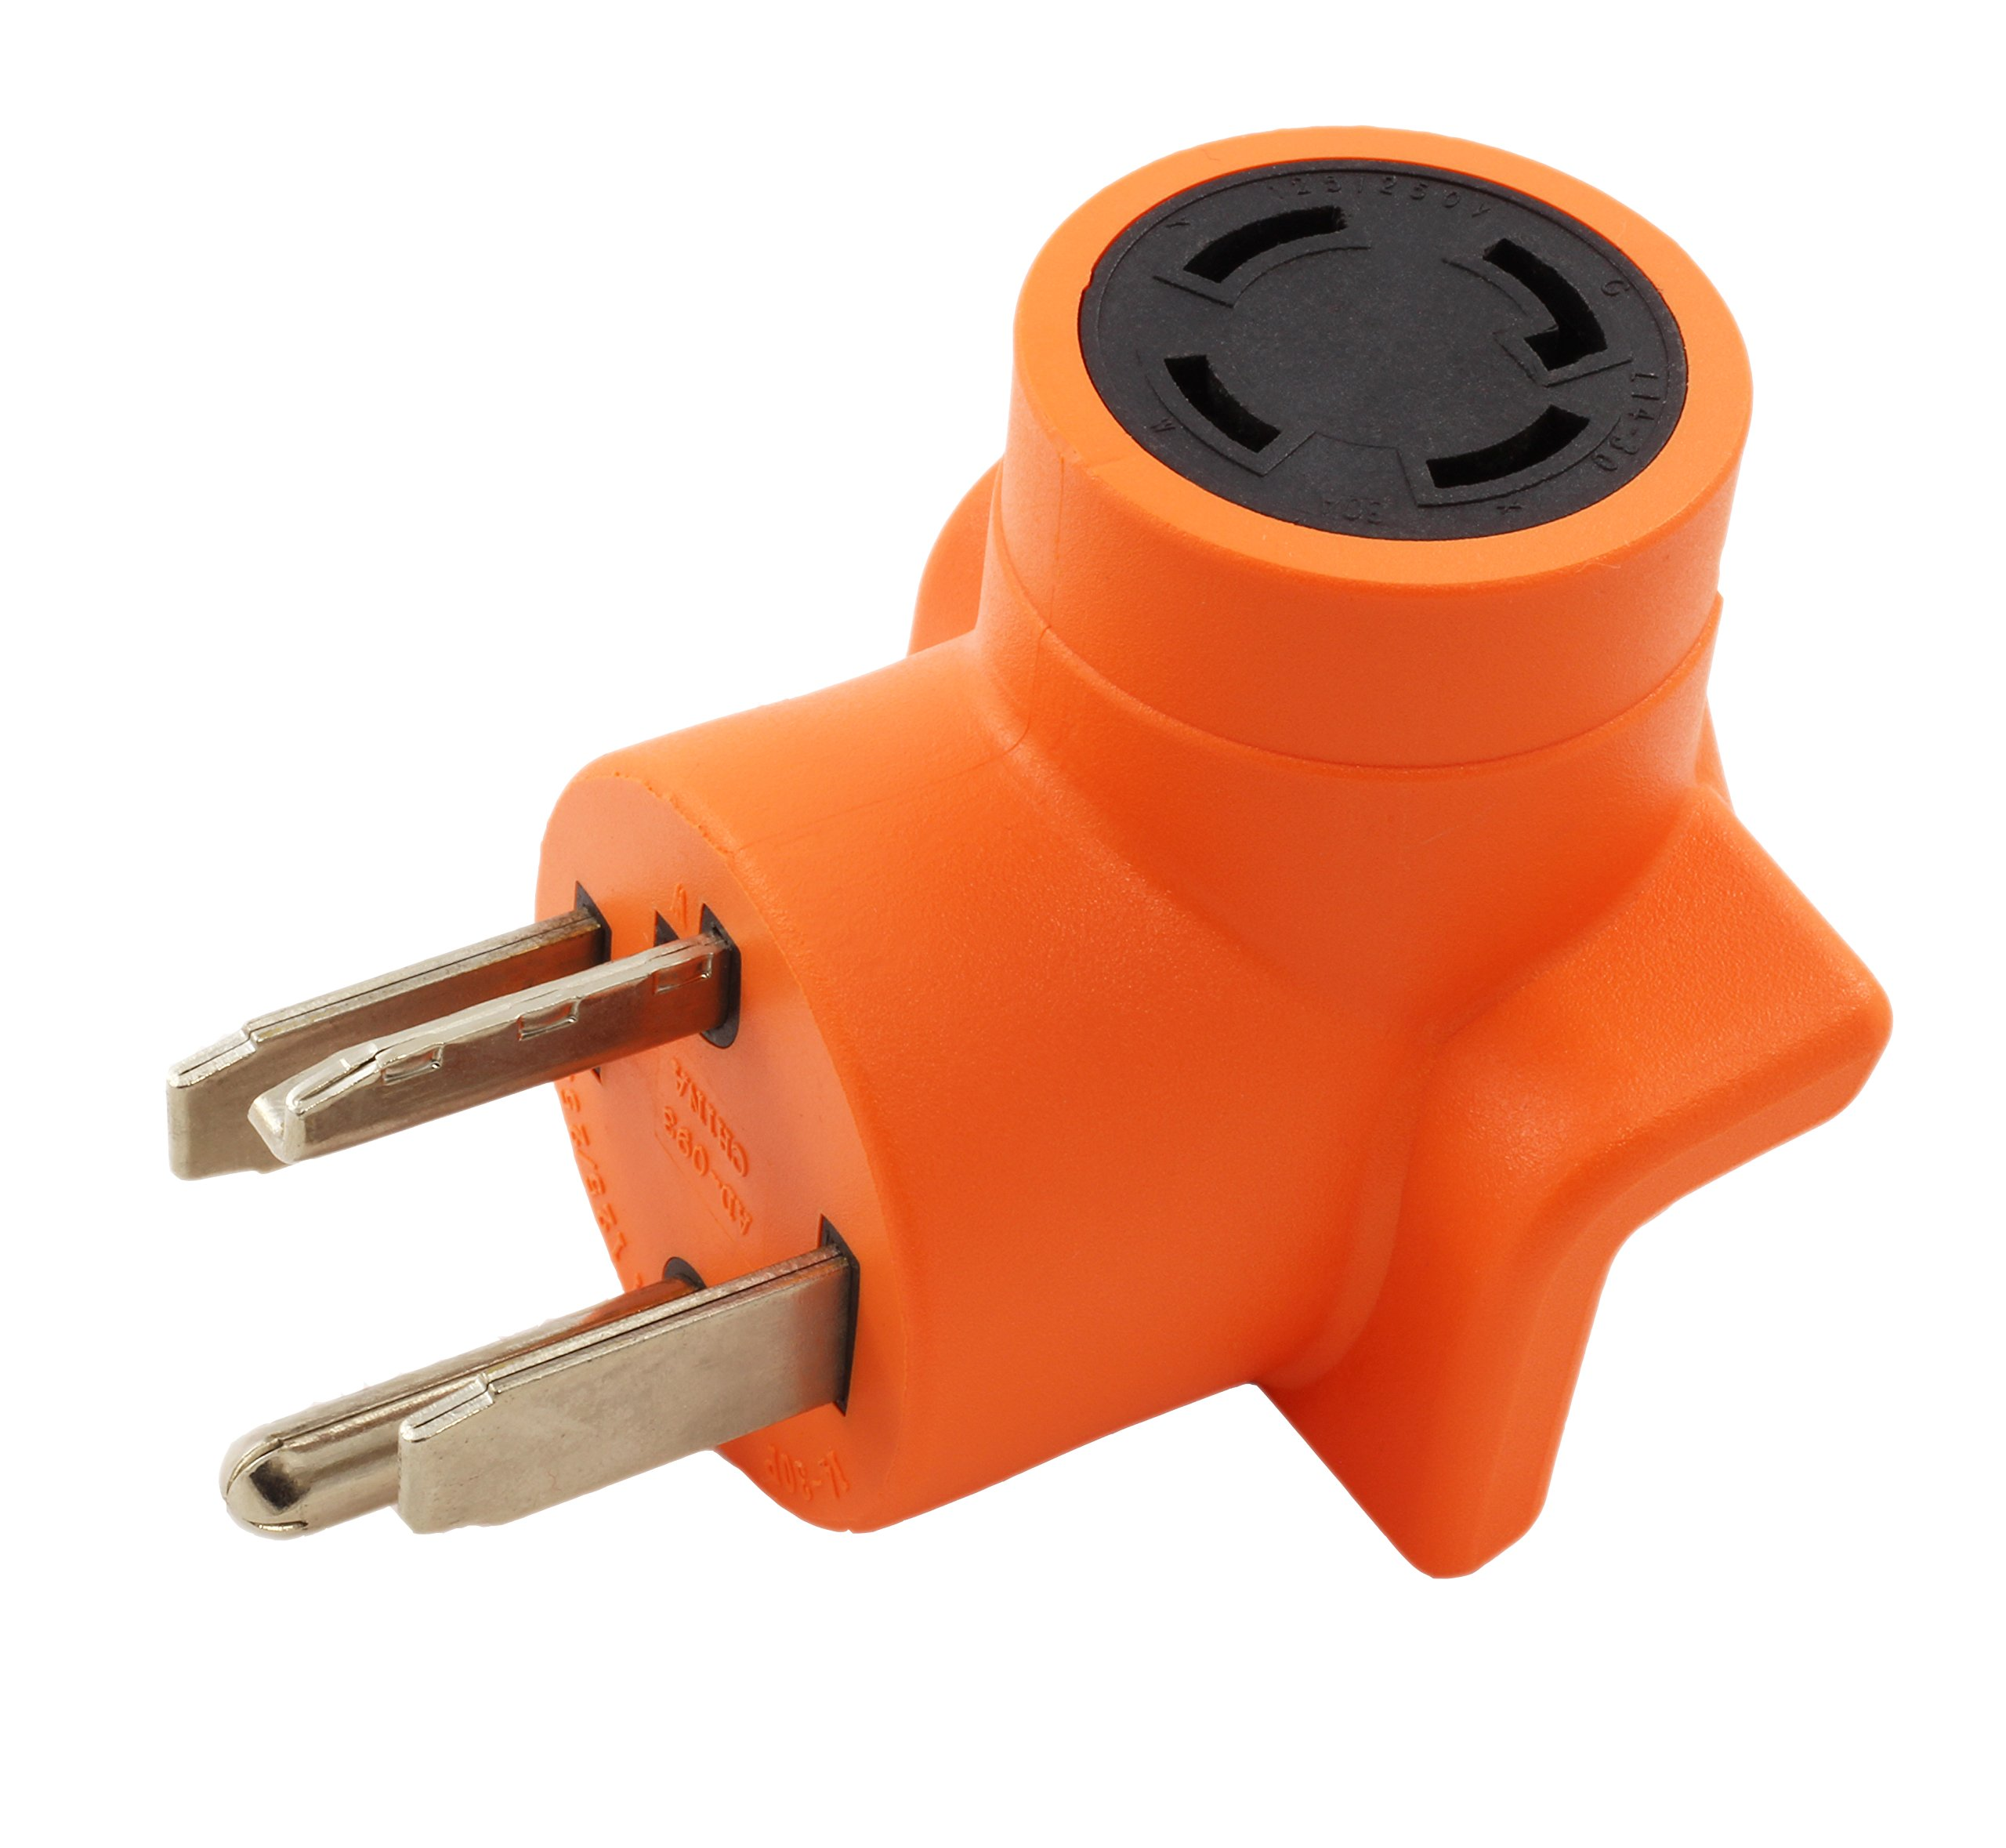 AC WORKS [AD1430L1430] Dryer Outlet Adapter 4-Prong Dryer 14-30P Plug to 4-Prong Locking 30Amp 125/250 L14-30R Adapter